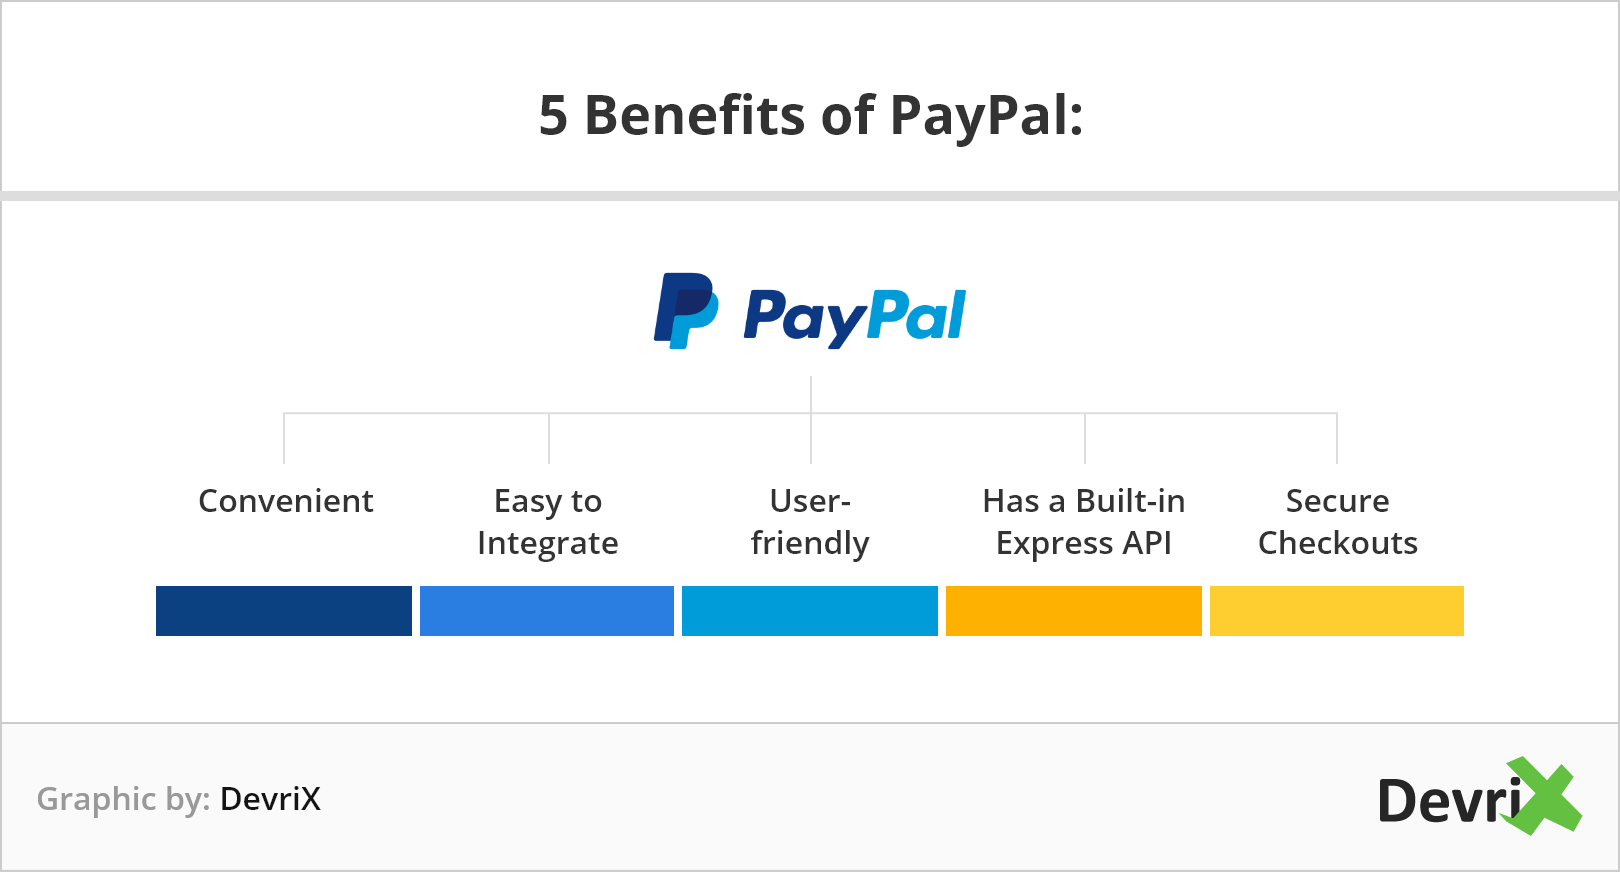 5 benefits of PayPal